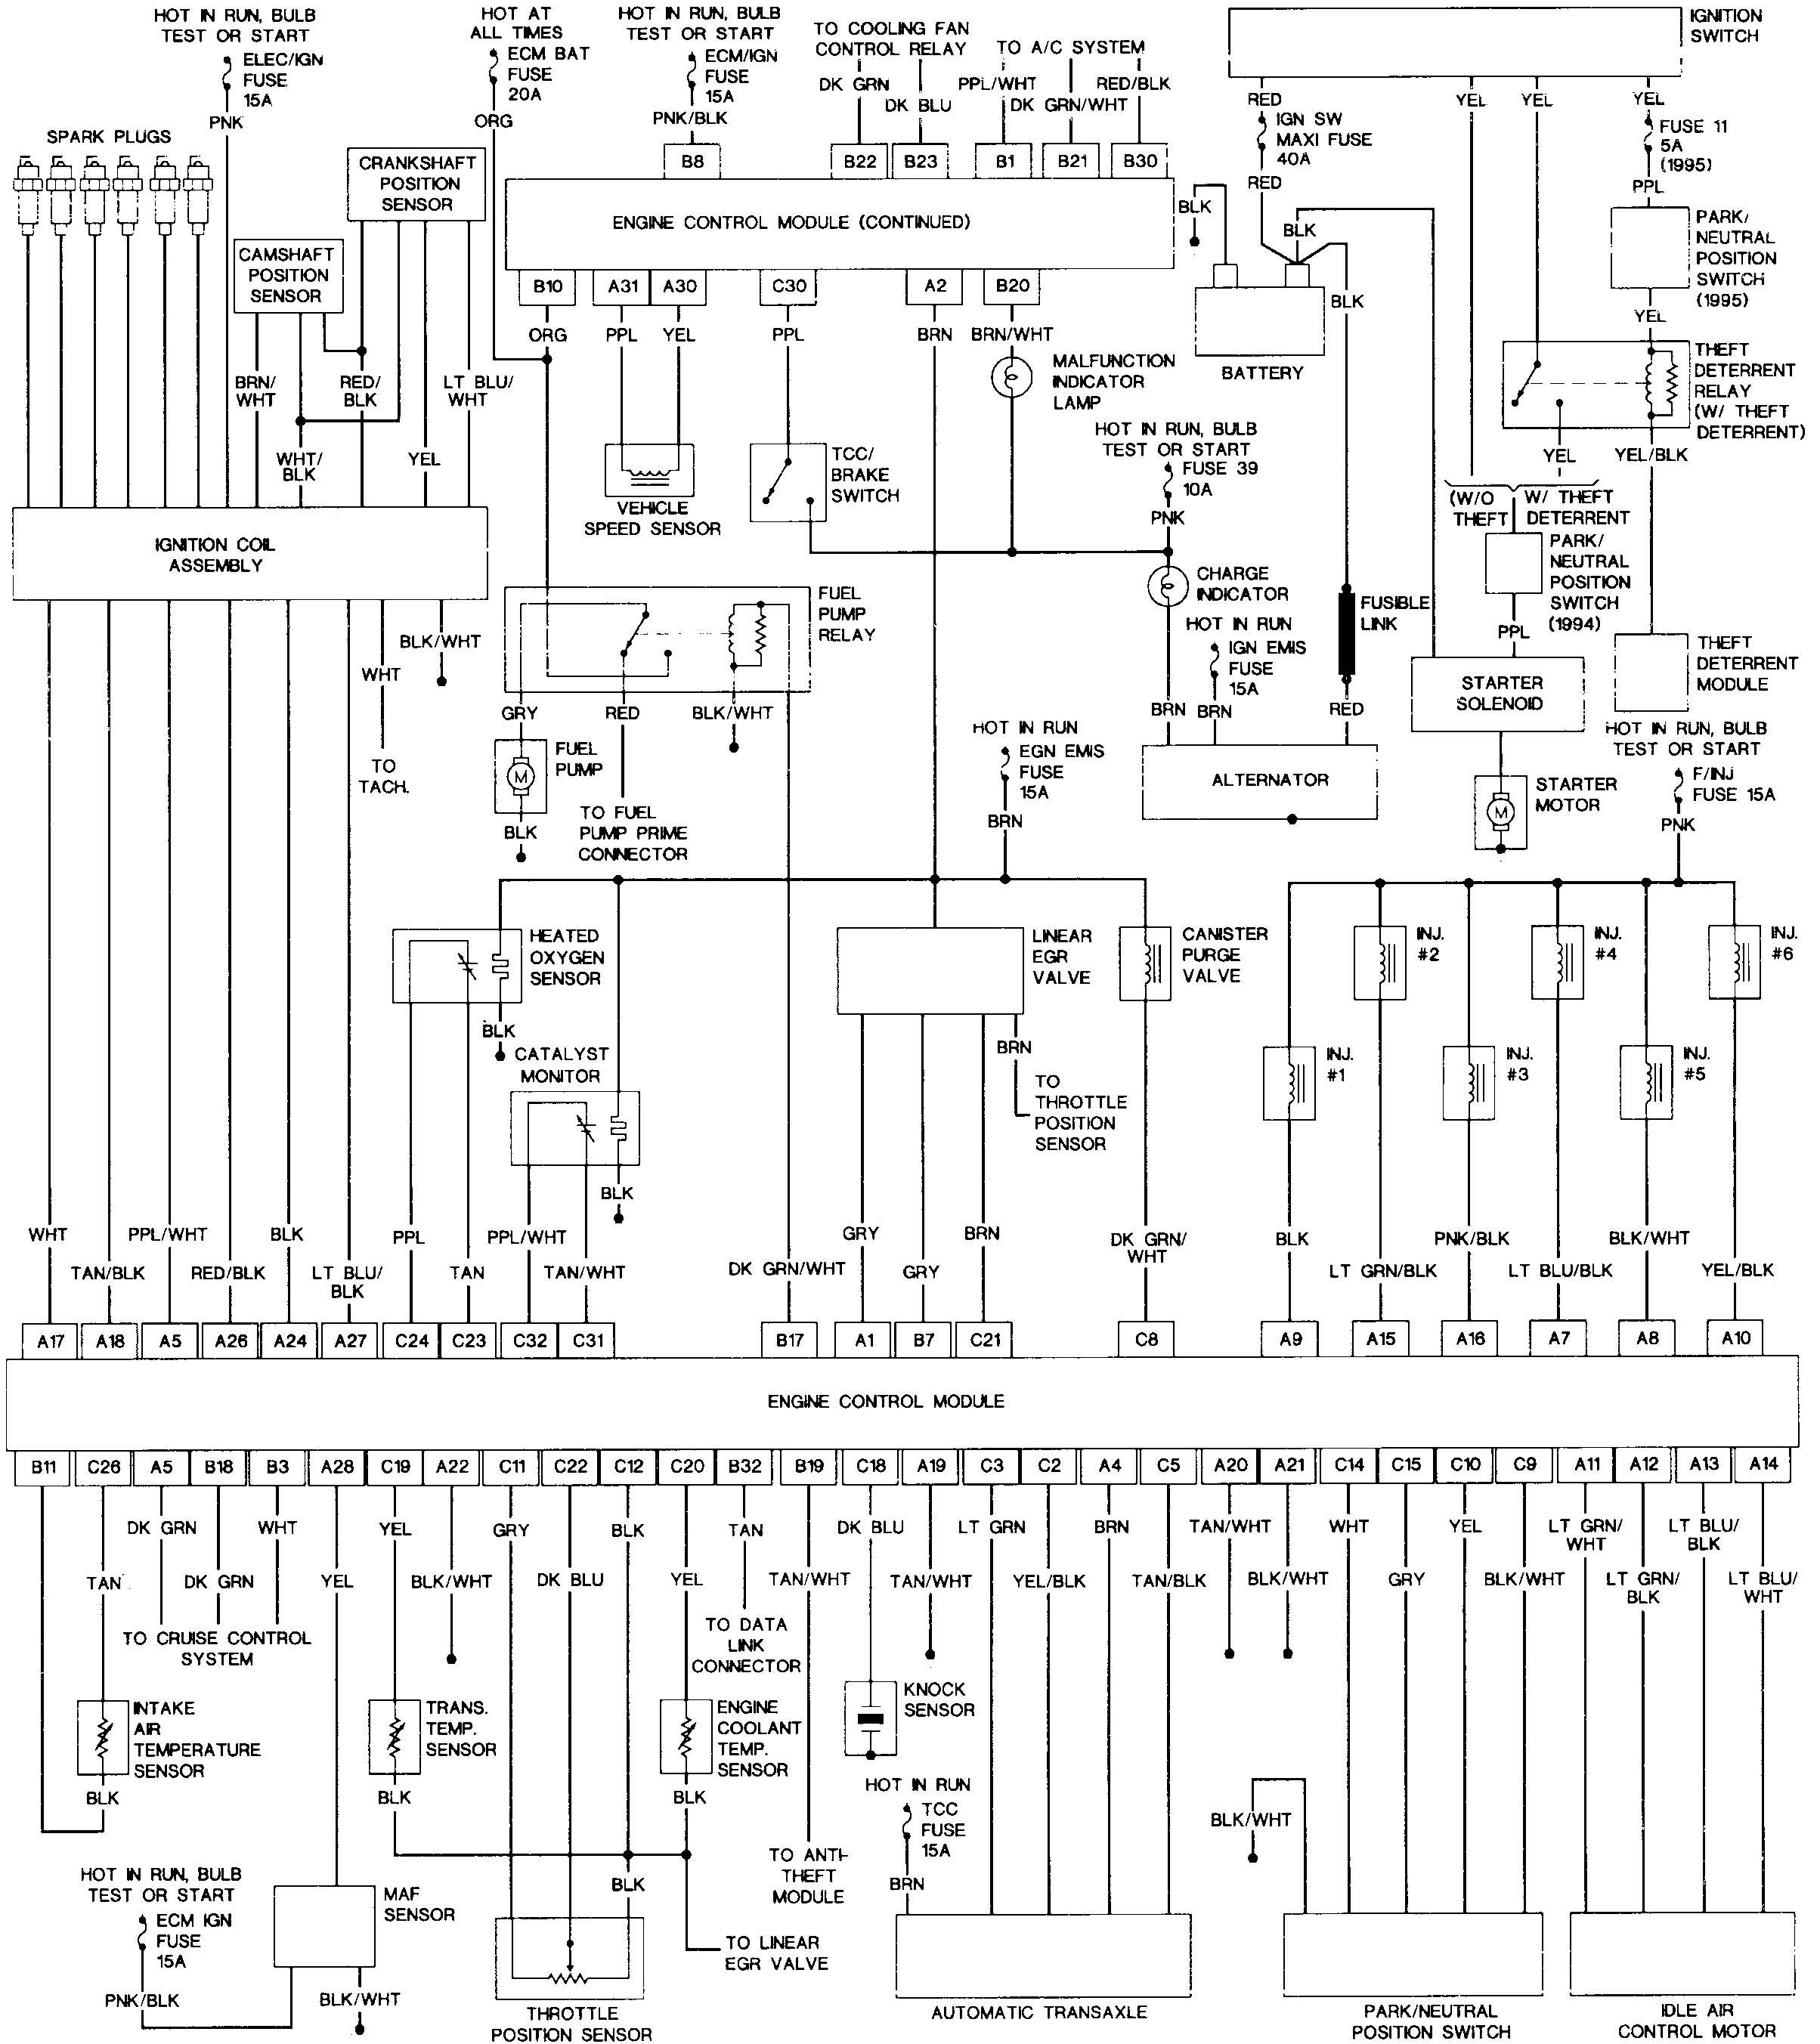 rendezvous fuse diagrams wiring diagram02 rendezvous fuse diagram circuit diagram template